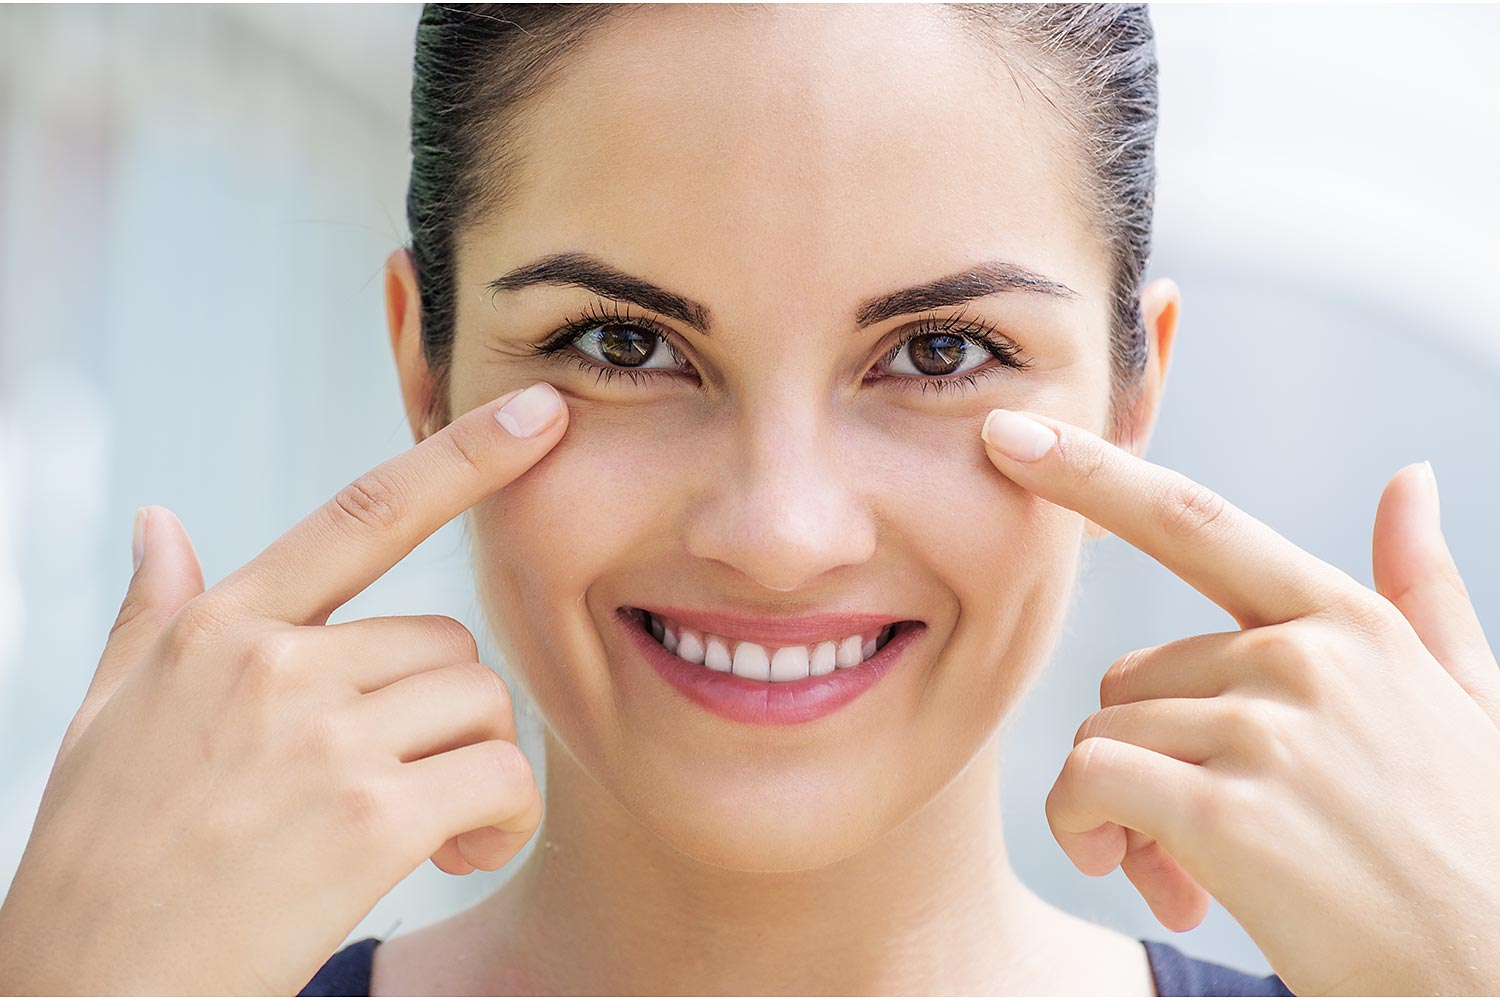 Looking For the Best Eye Clinic?